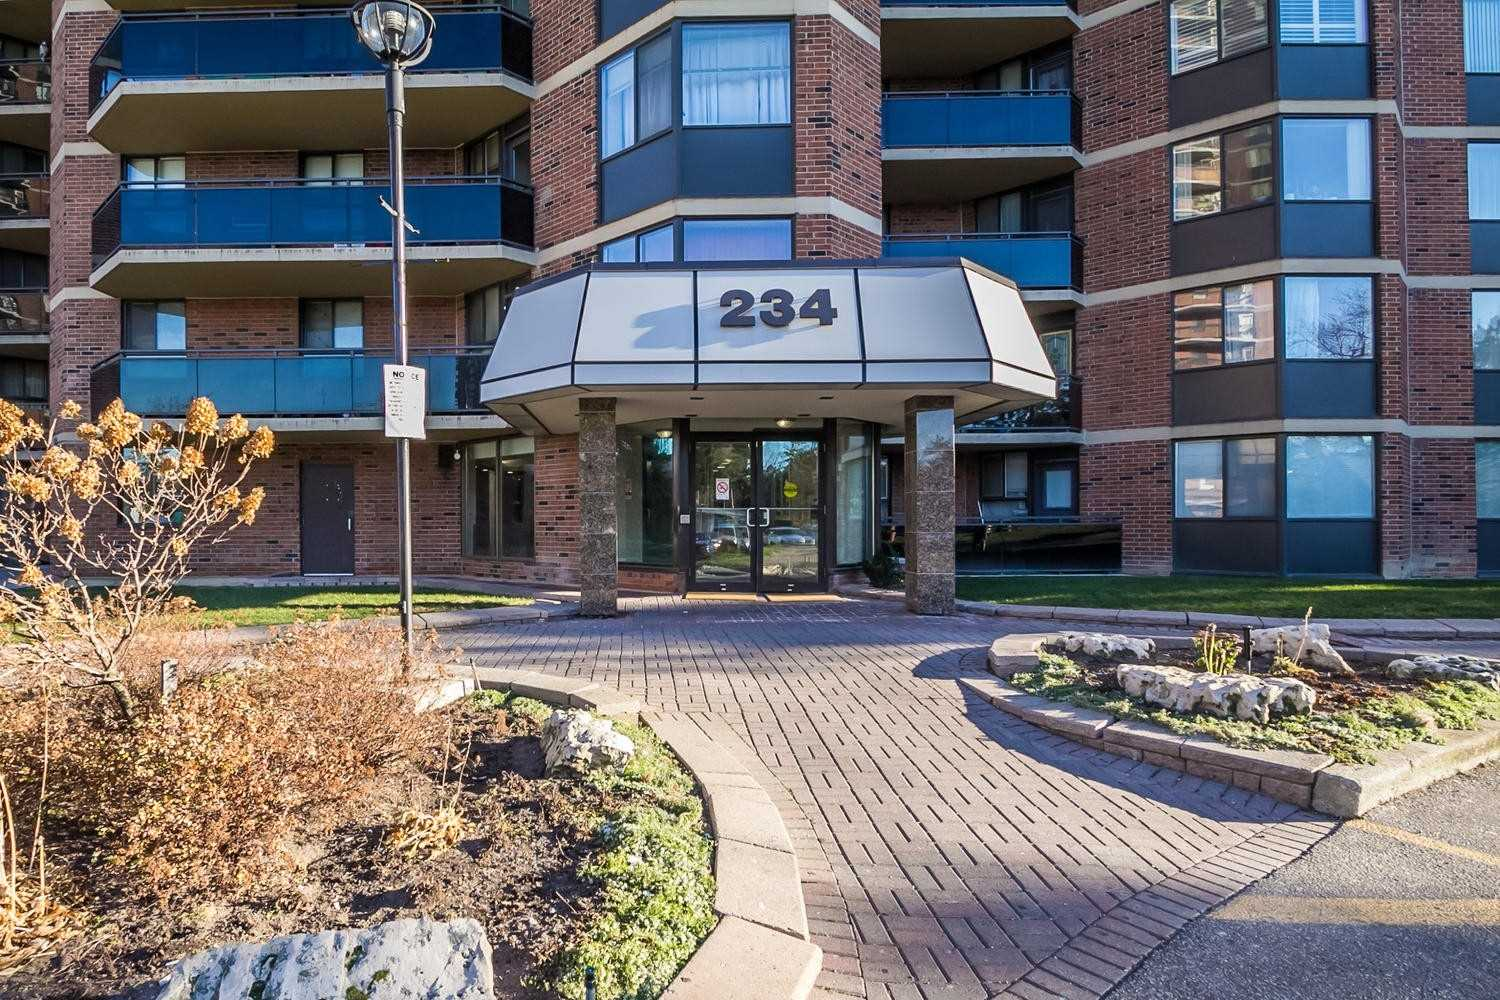 Twin Towers Condos: 234 Albion Road, Toronto, ON